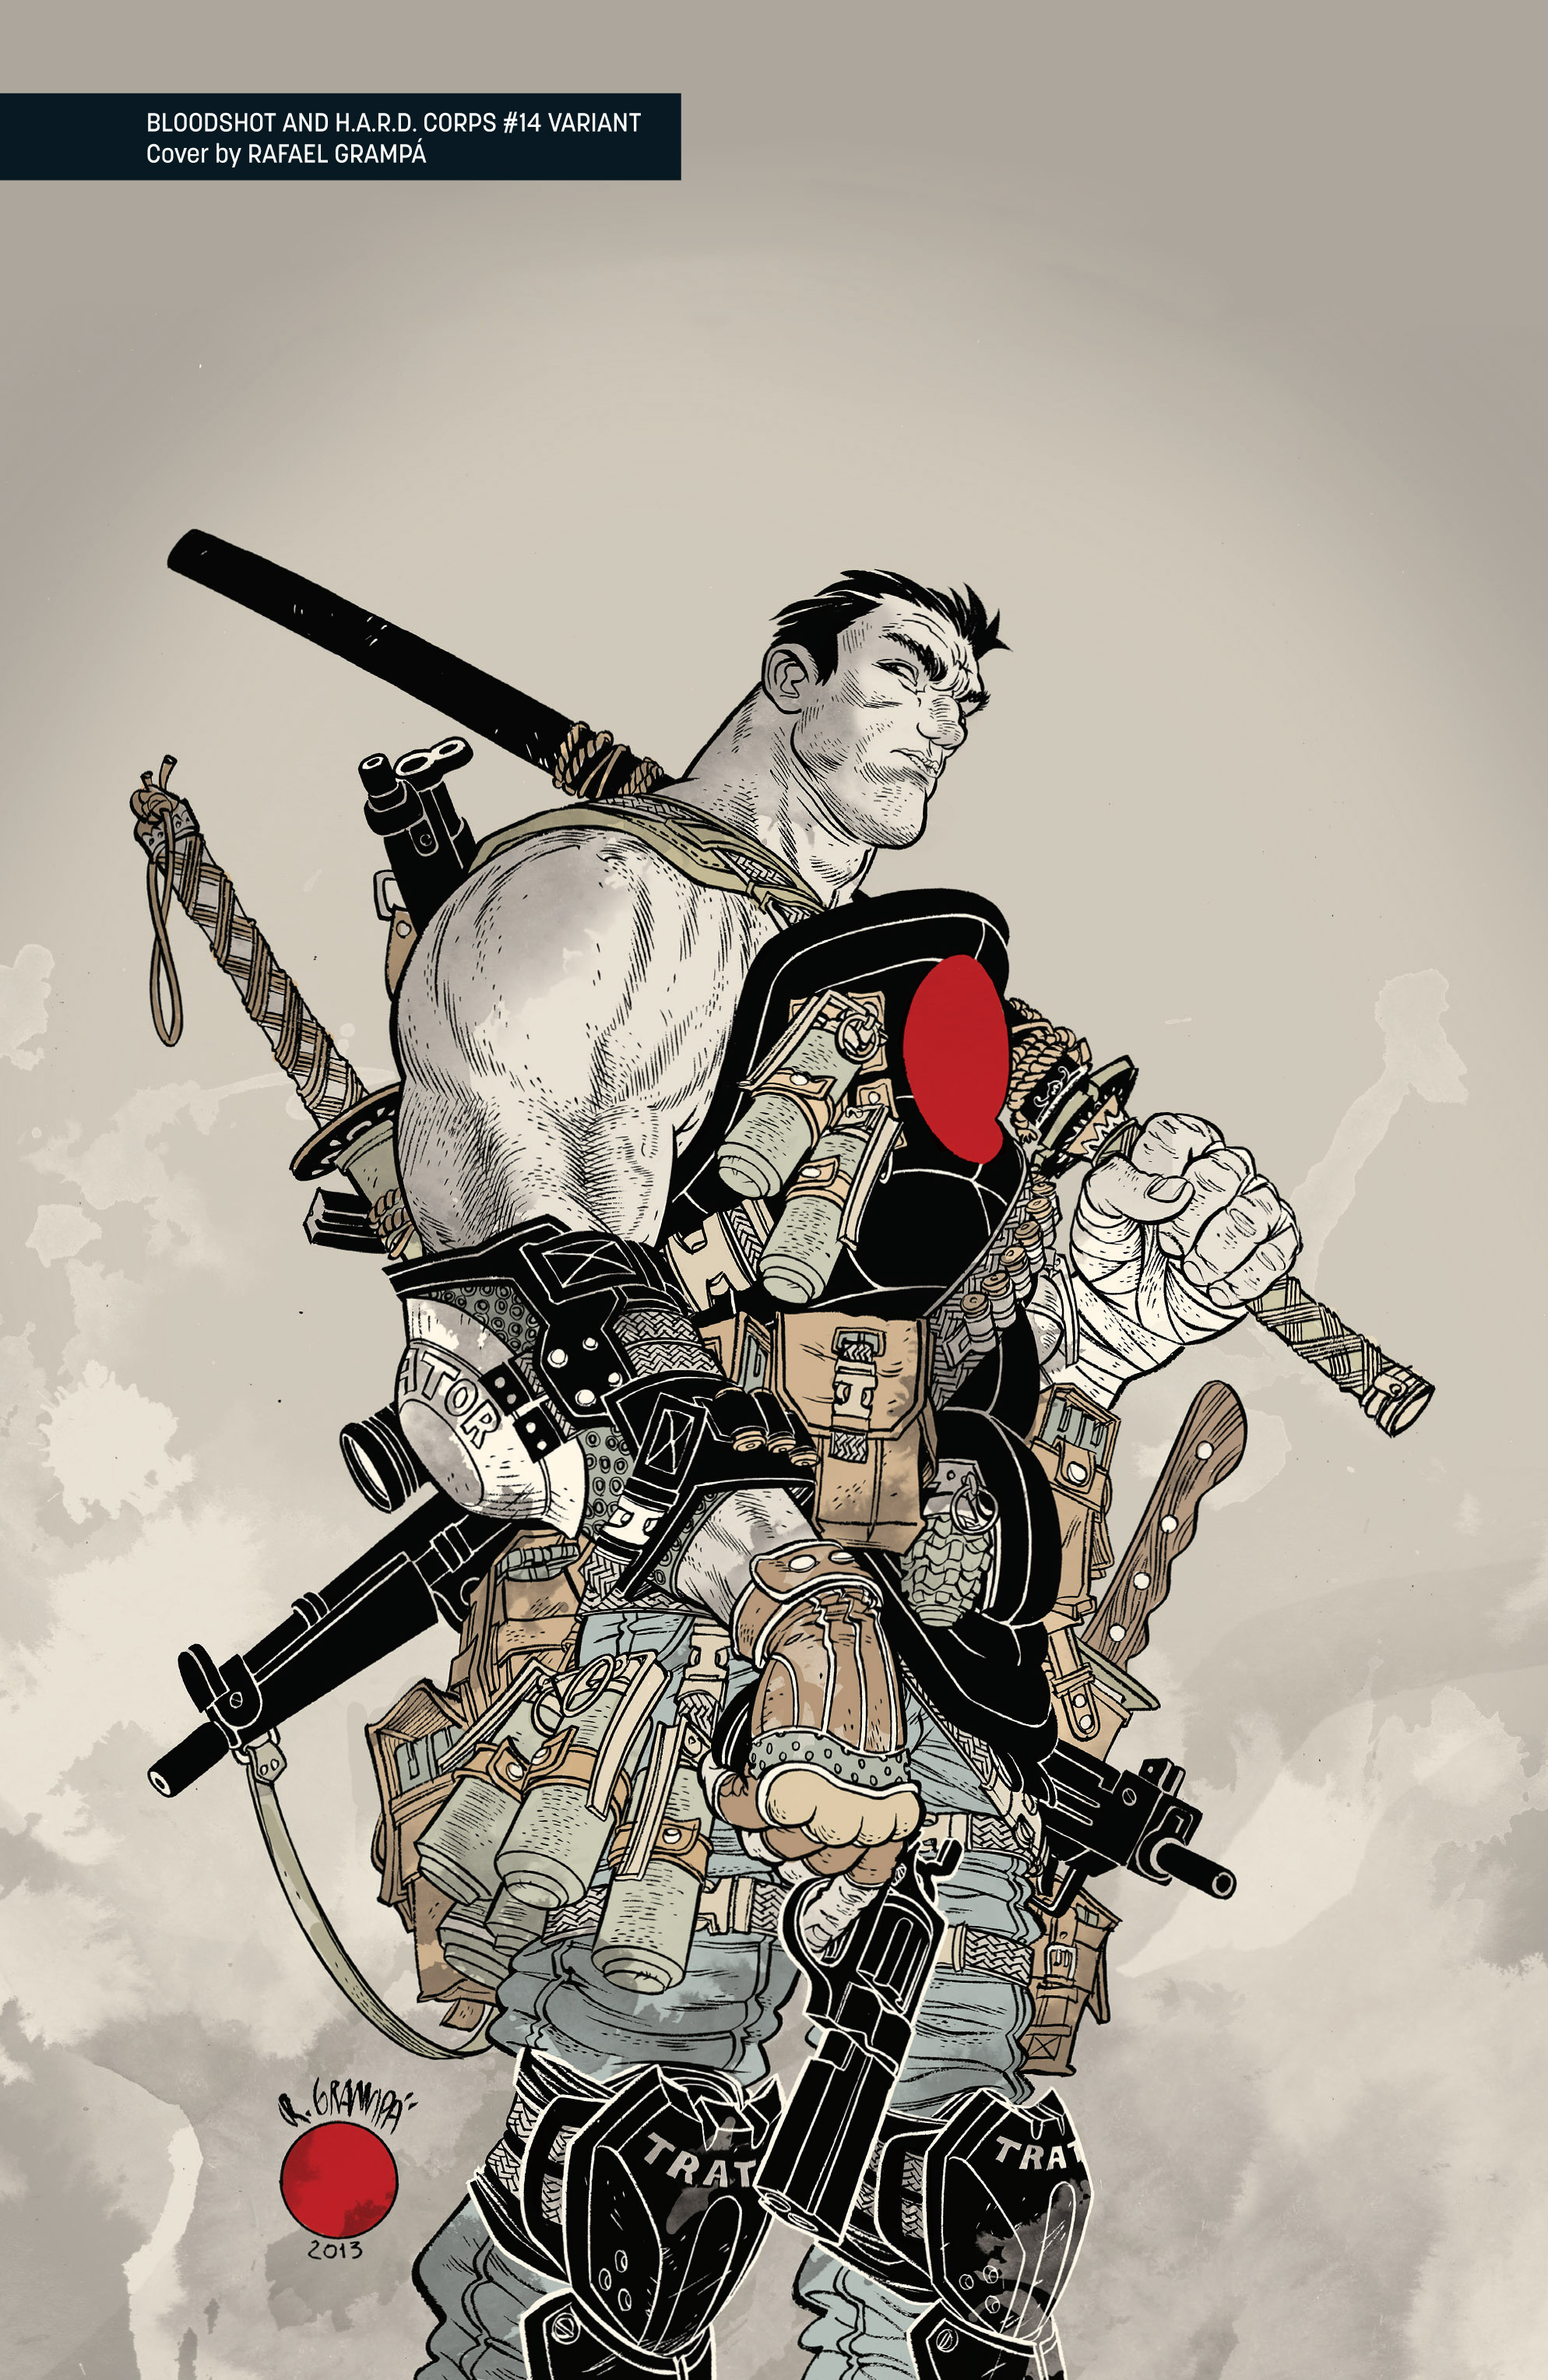 Read online Bloodshot and H.A.R.D.Corps comic -  Issue # TPB 4 - 123